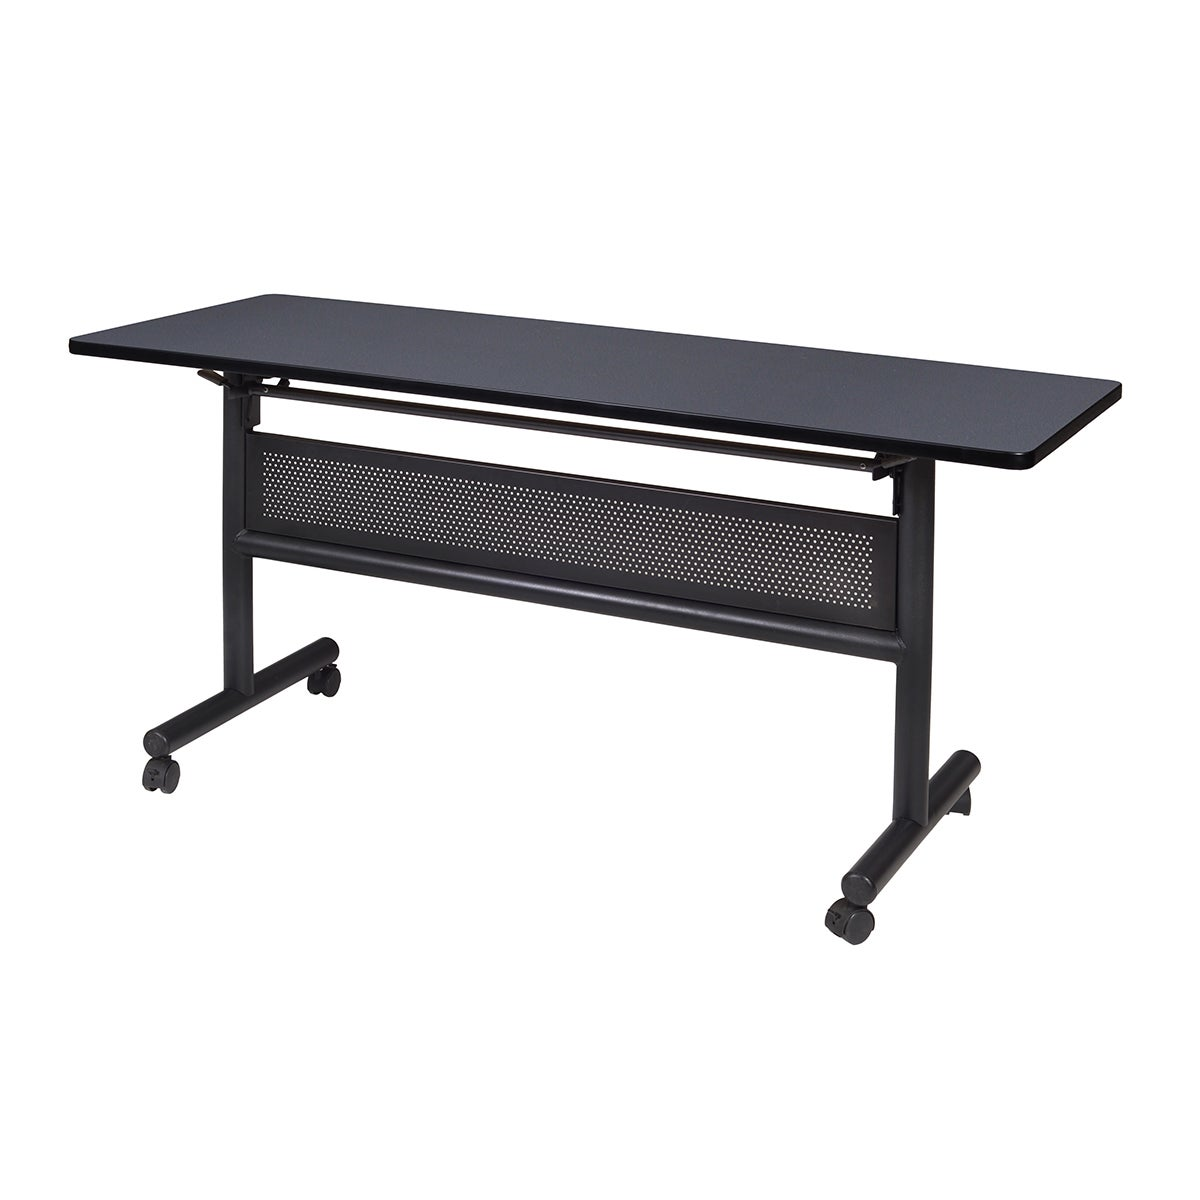 Shop Regency Seating Kobe WoodLaminateMetal Inch X Inch Flip - 18 x 60 training table